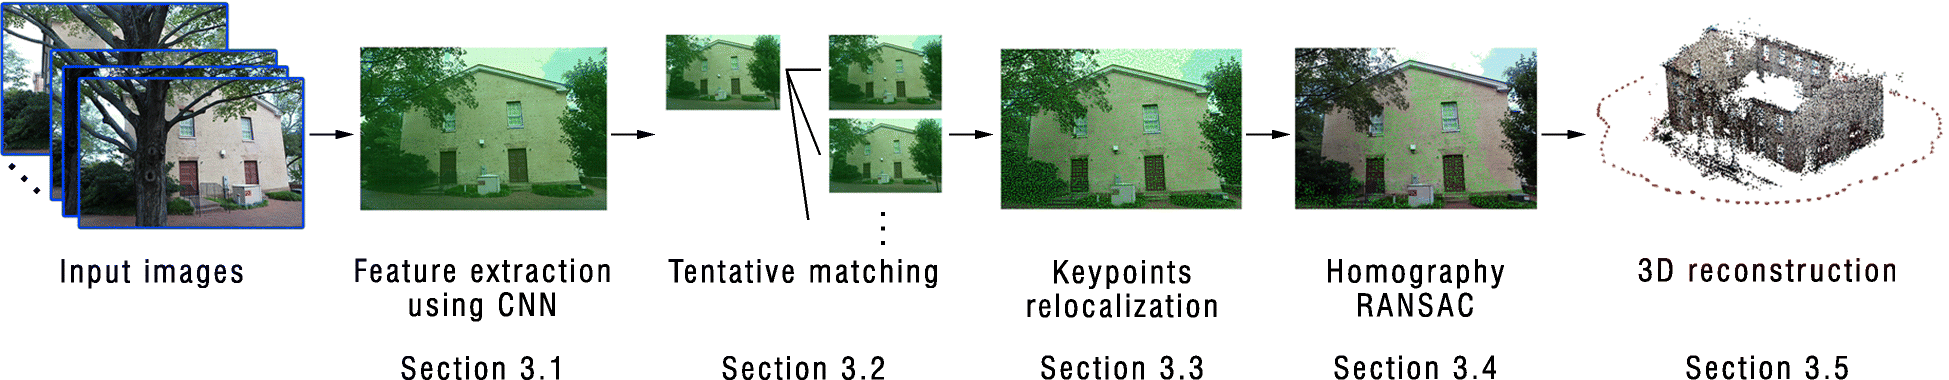 Structure from motion using dense CNN features with keypoint